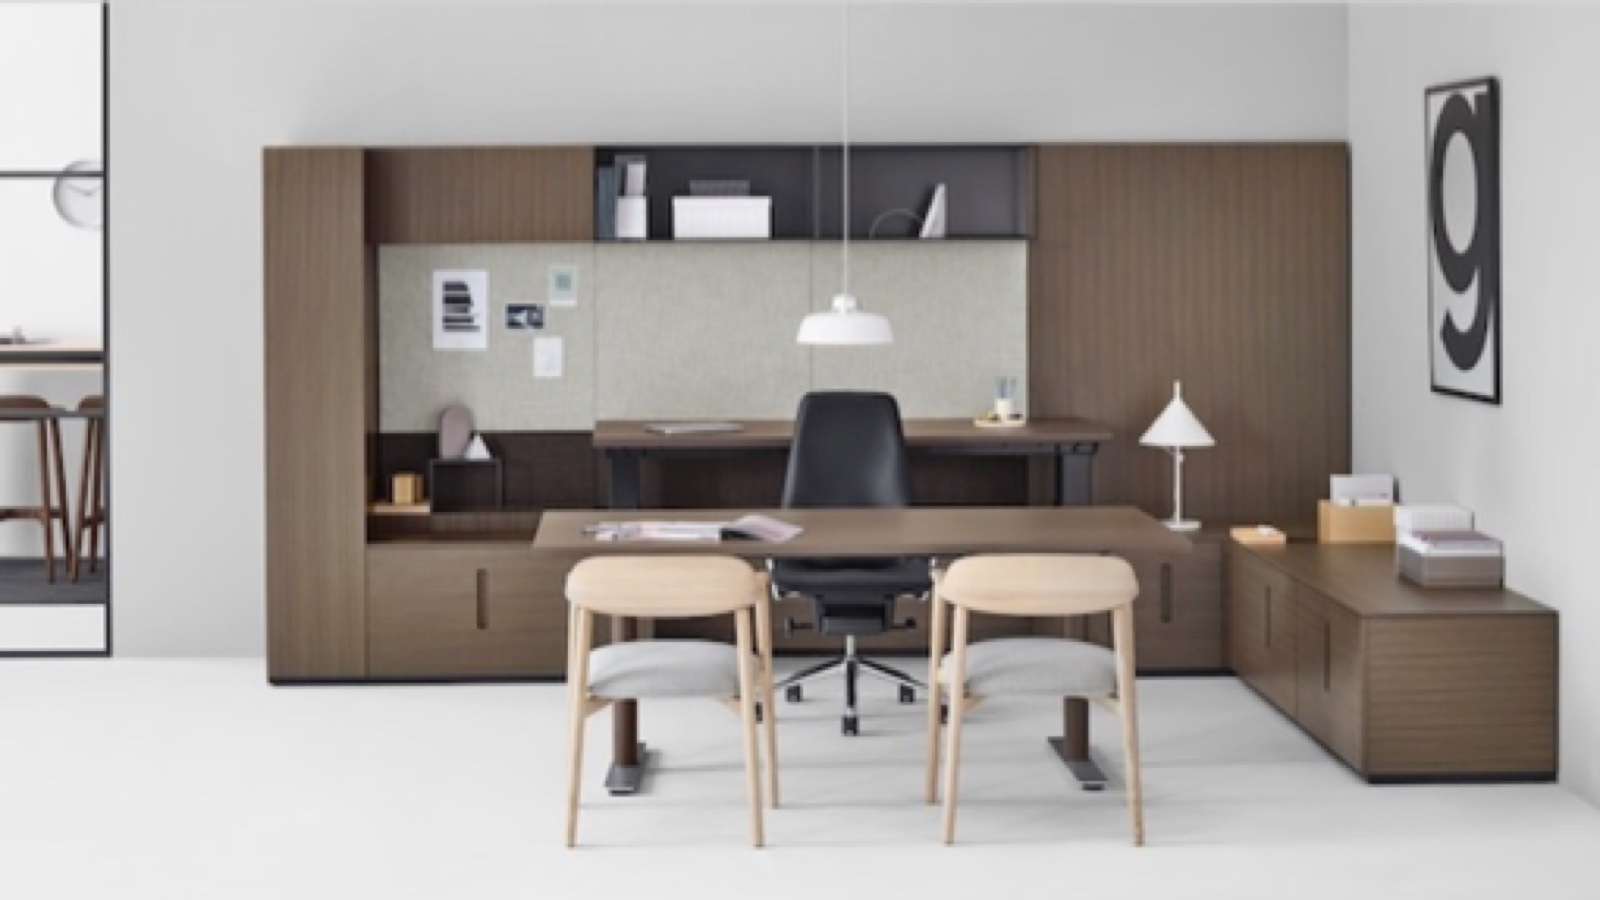 Stark white room featuring dark wood veneer casegoods desk system. A simple matching desk, black leather rolling chair, and light wood low-back guest chairs sit in front.